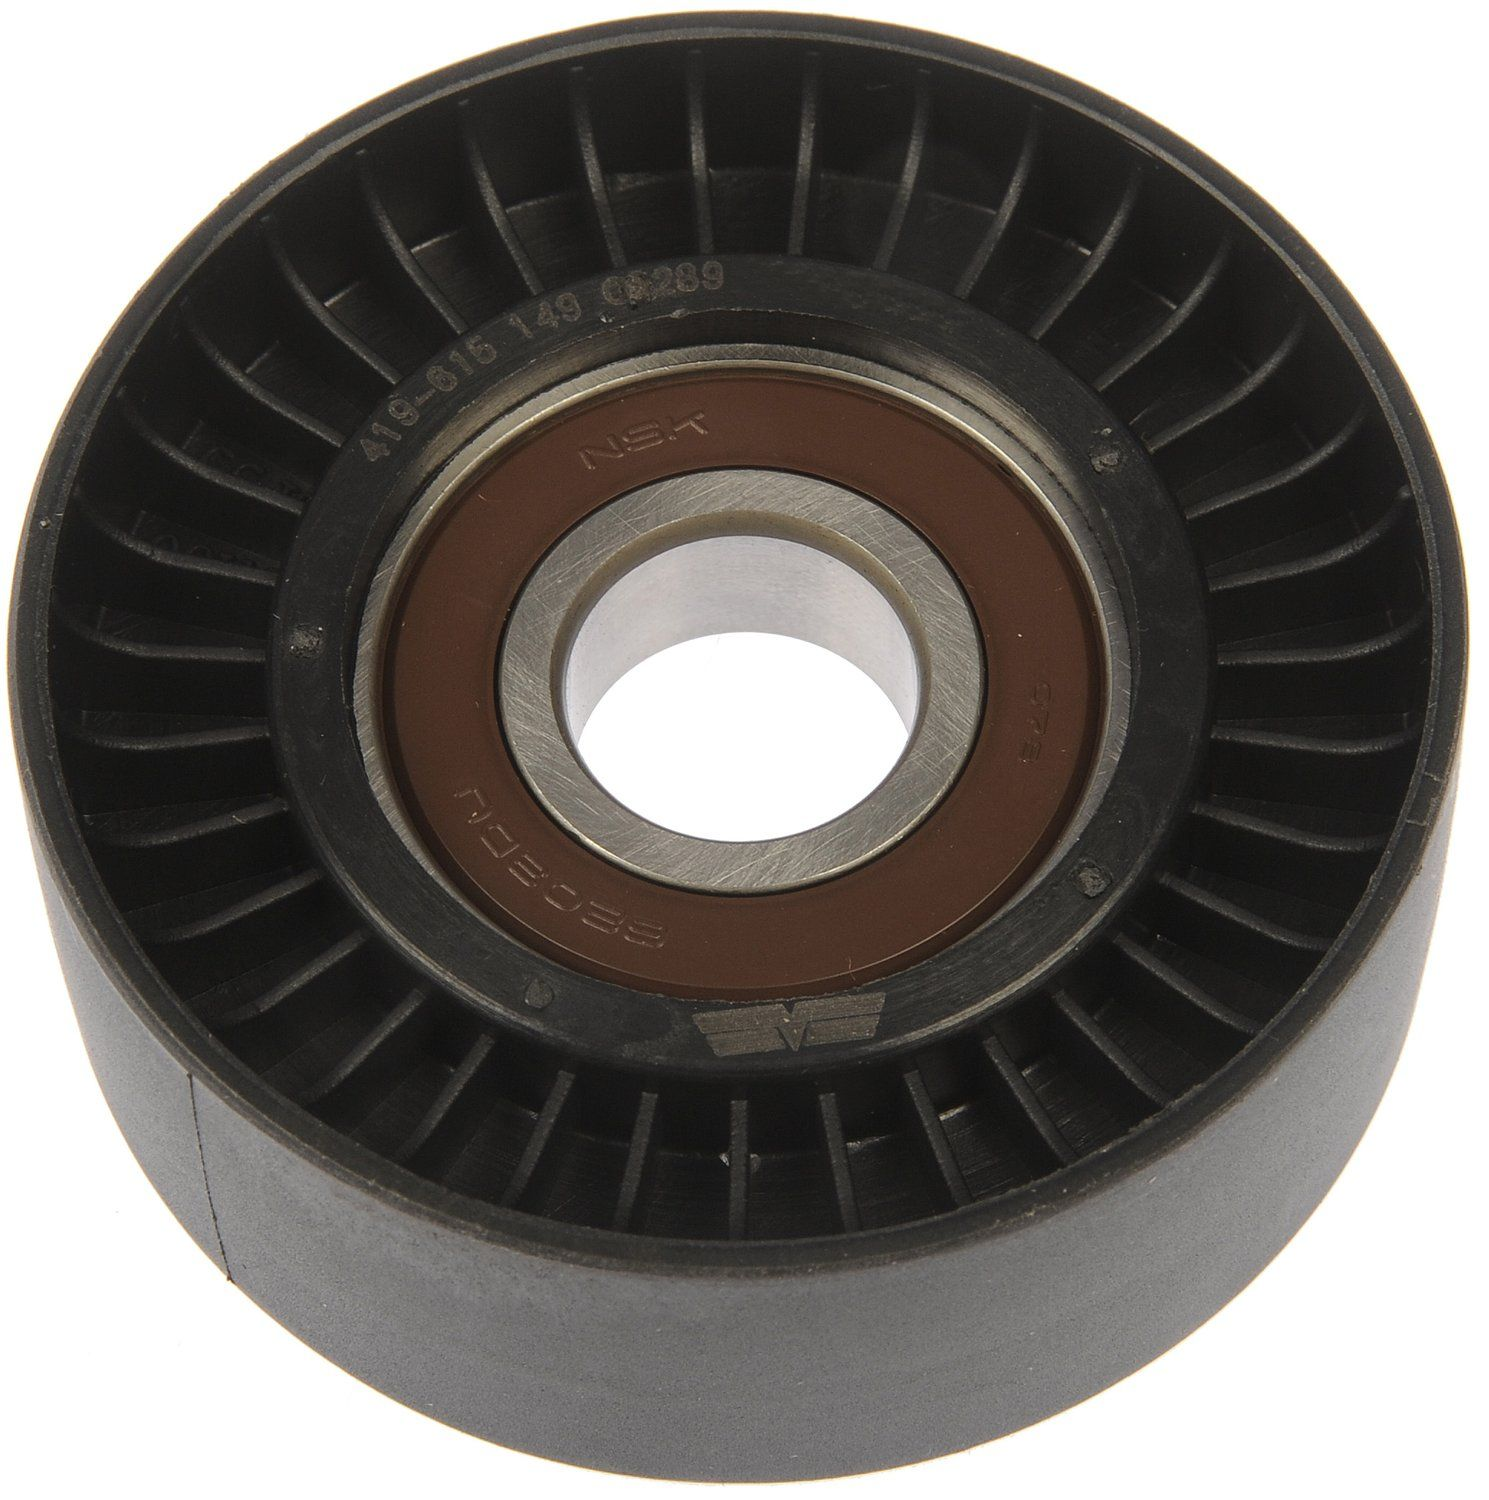 Chrysler Pacifica Drive Belt Idler Pulley Replacement Dayco Dorman. 2007 Chrysler Pacifica Drive Belt Idler Pulley Smooth 6 Cyl 40l Dorman 4195007. Chrysler. 2007 Chrysler Pacifica Engine Pulley Diagram At Scoala.co